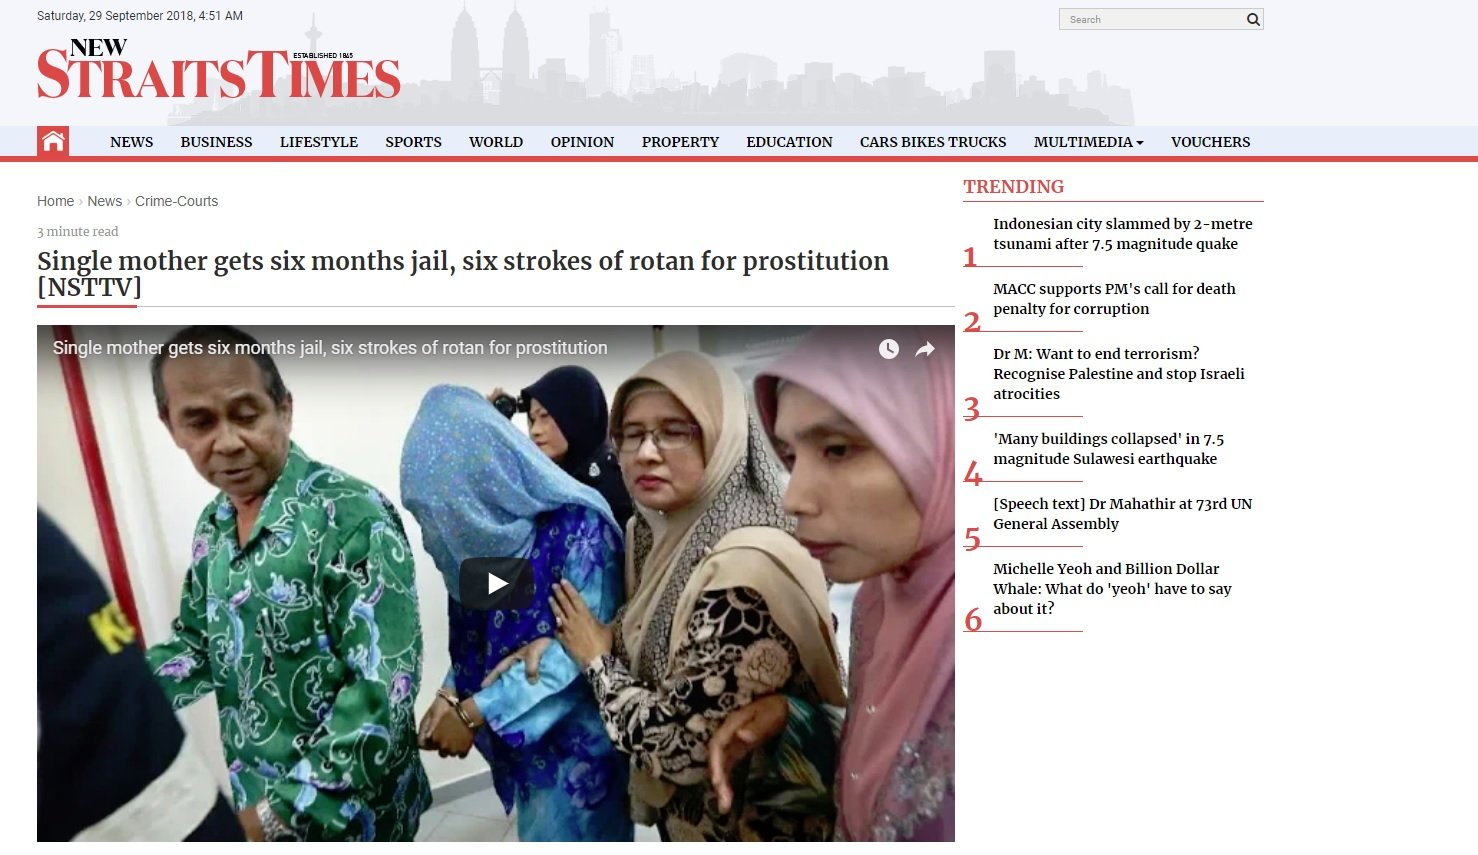 Single mother to be whipped NST 27 September 2018 · Rebuilding Malaysia